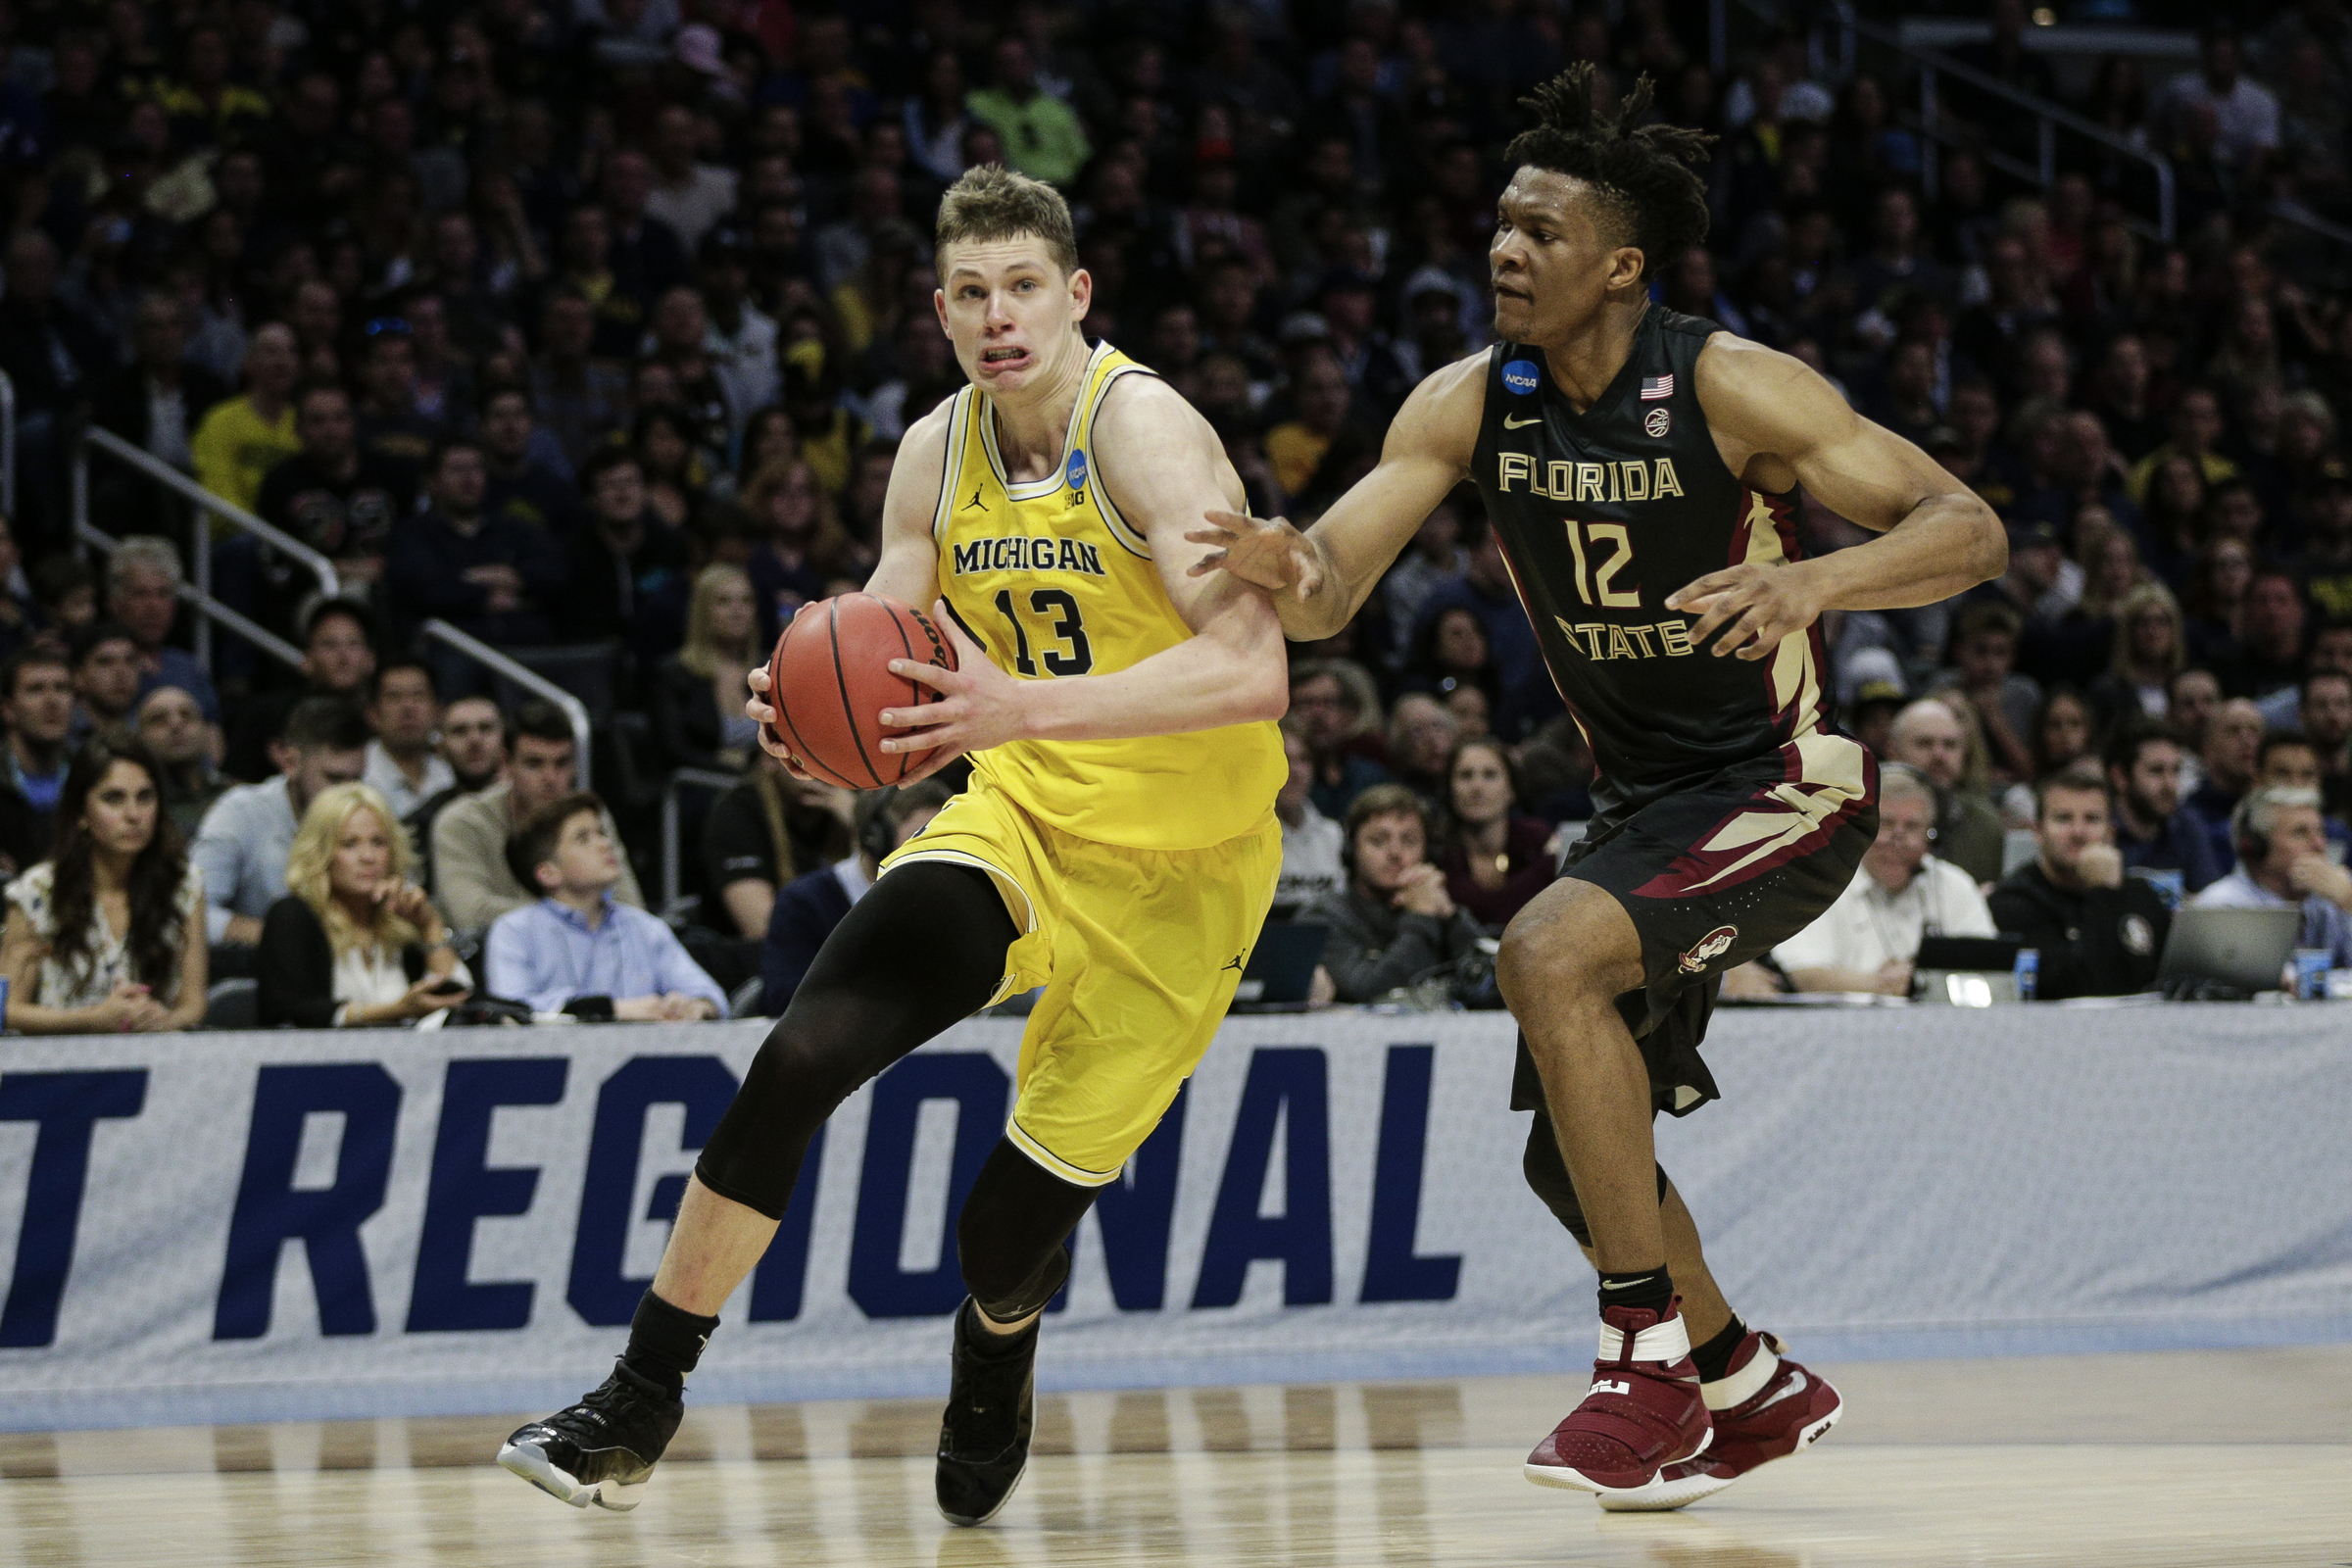 March 24, 2018 - Los Angeles, CA, USA - Michigan's Moritz Wagner (13) drives against Florida State's Ike Obiagu (12)during the first half of an NCAA Tournament regional final at Staples Center in Los Angeles on Saturday, March 24, 2018. (Credit Image: © Junfu Han/TNS via ZUMA Wire)